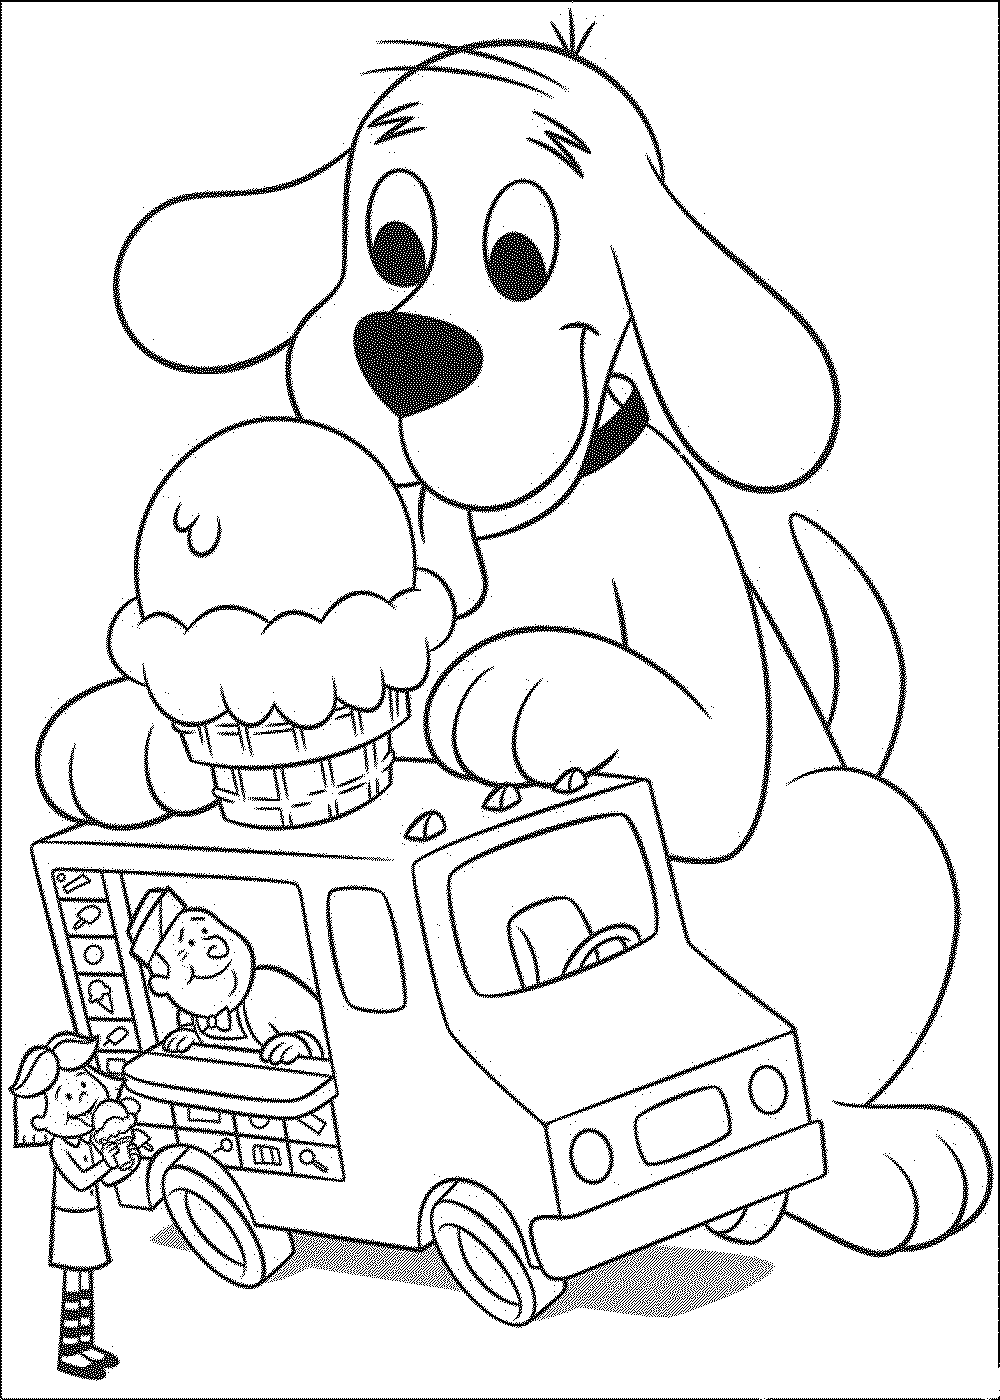 coloring picture dog dog coloring pages kidsuki dog coloring picture